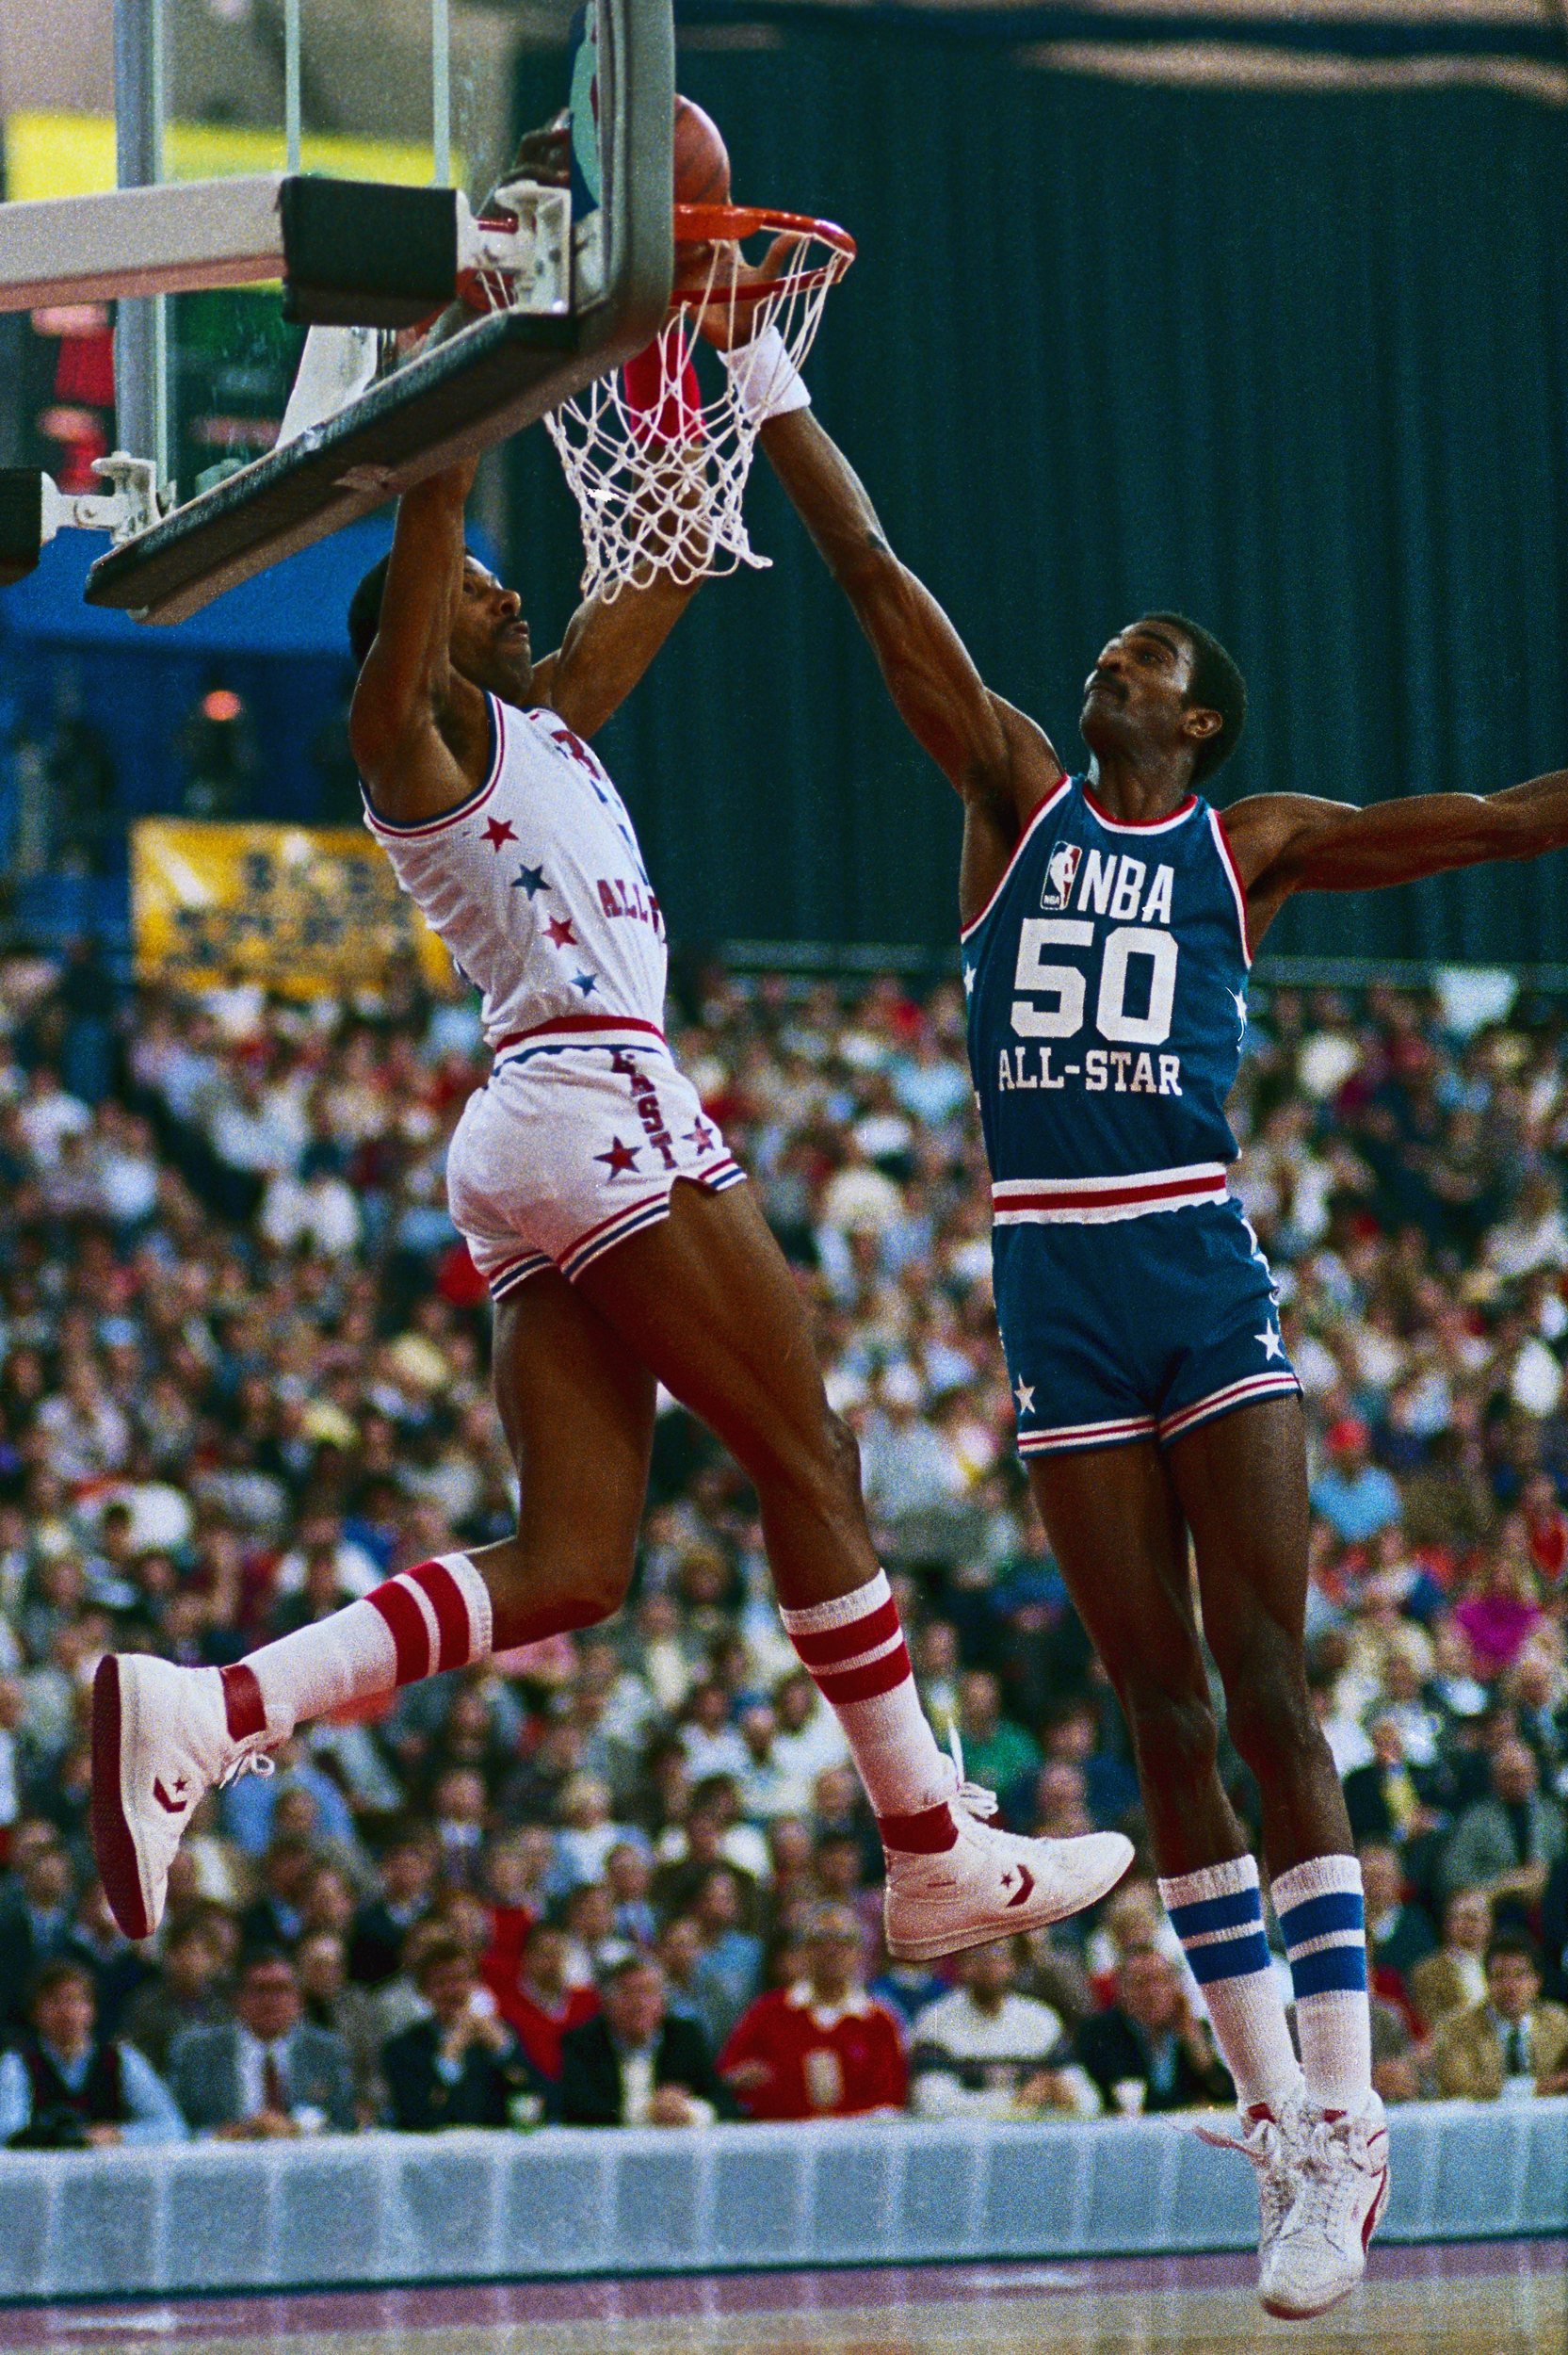 NBA Eastern Conference All Star drives for layup past defender Western Conference's Ralph Sampson (50) in first half of the NBA All Star Game.